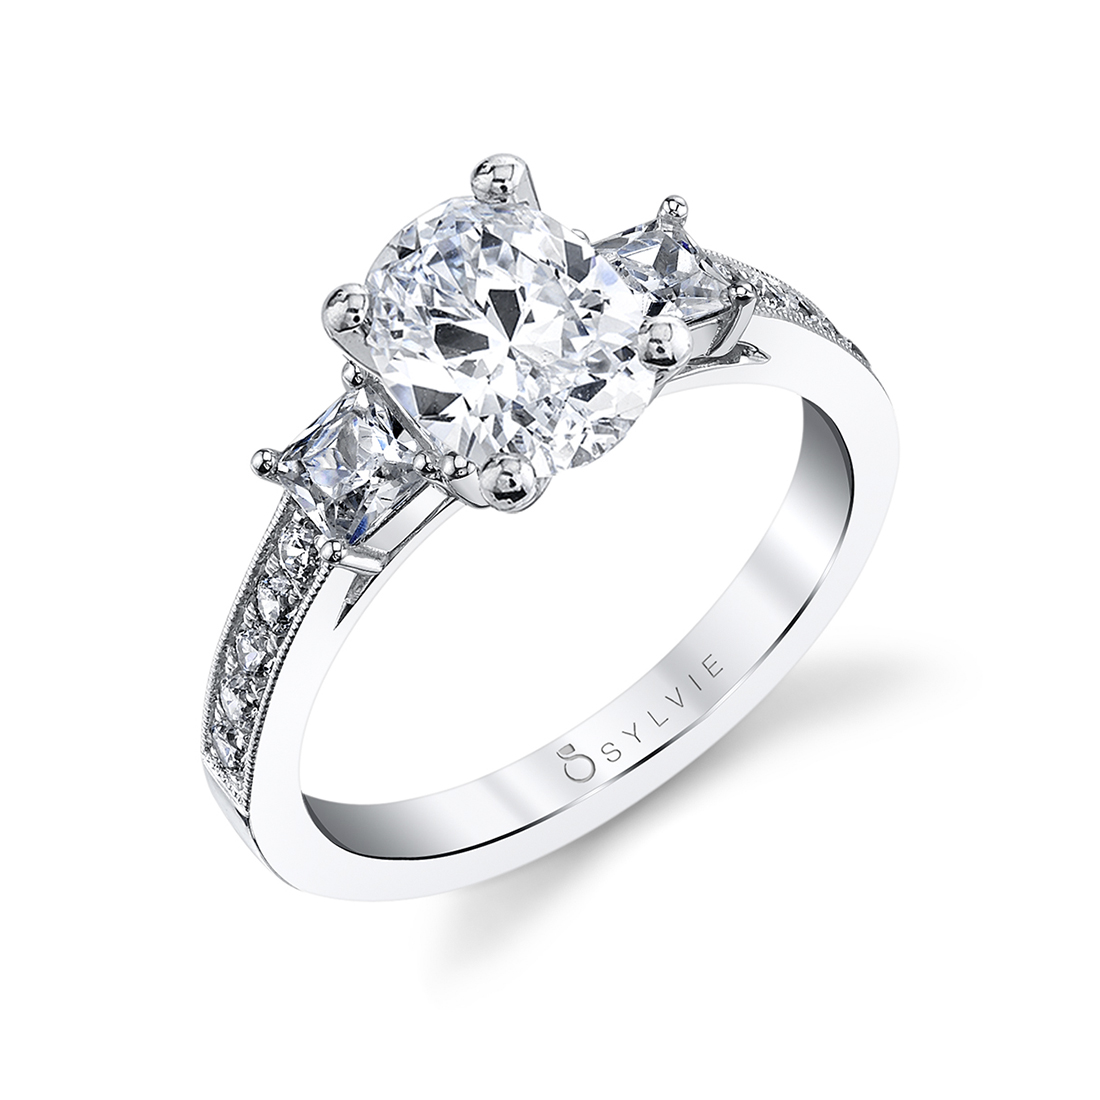 3 stone oval engagement ring princess side stones in white gold